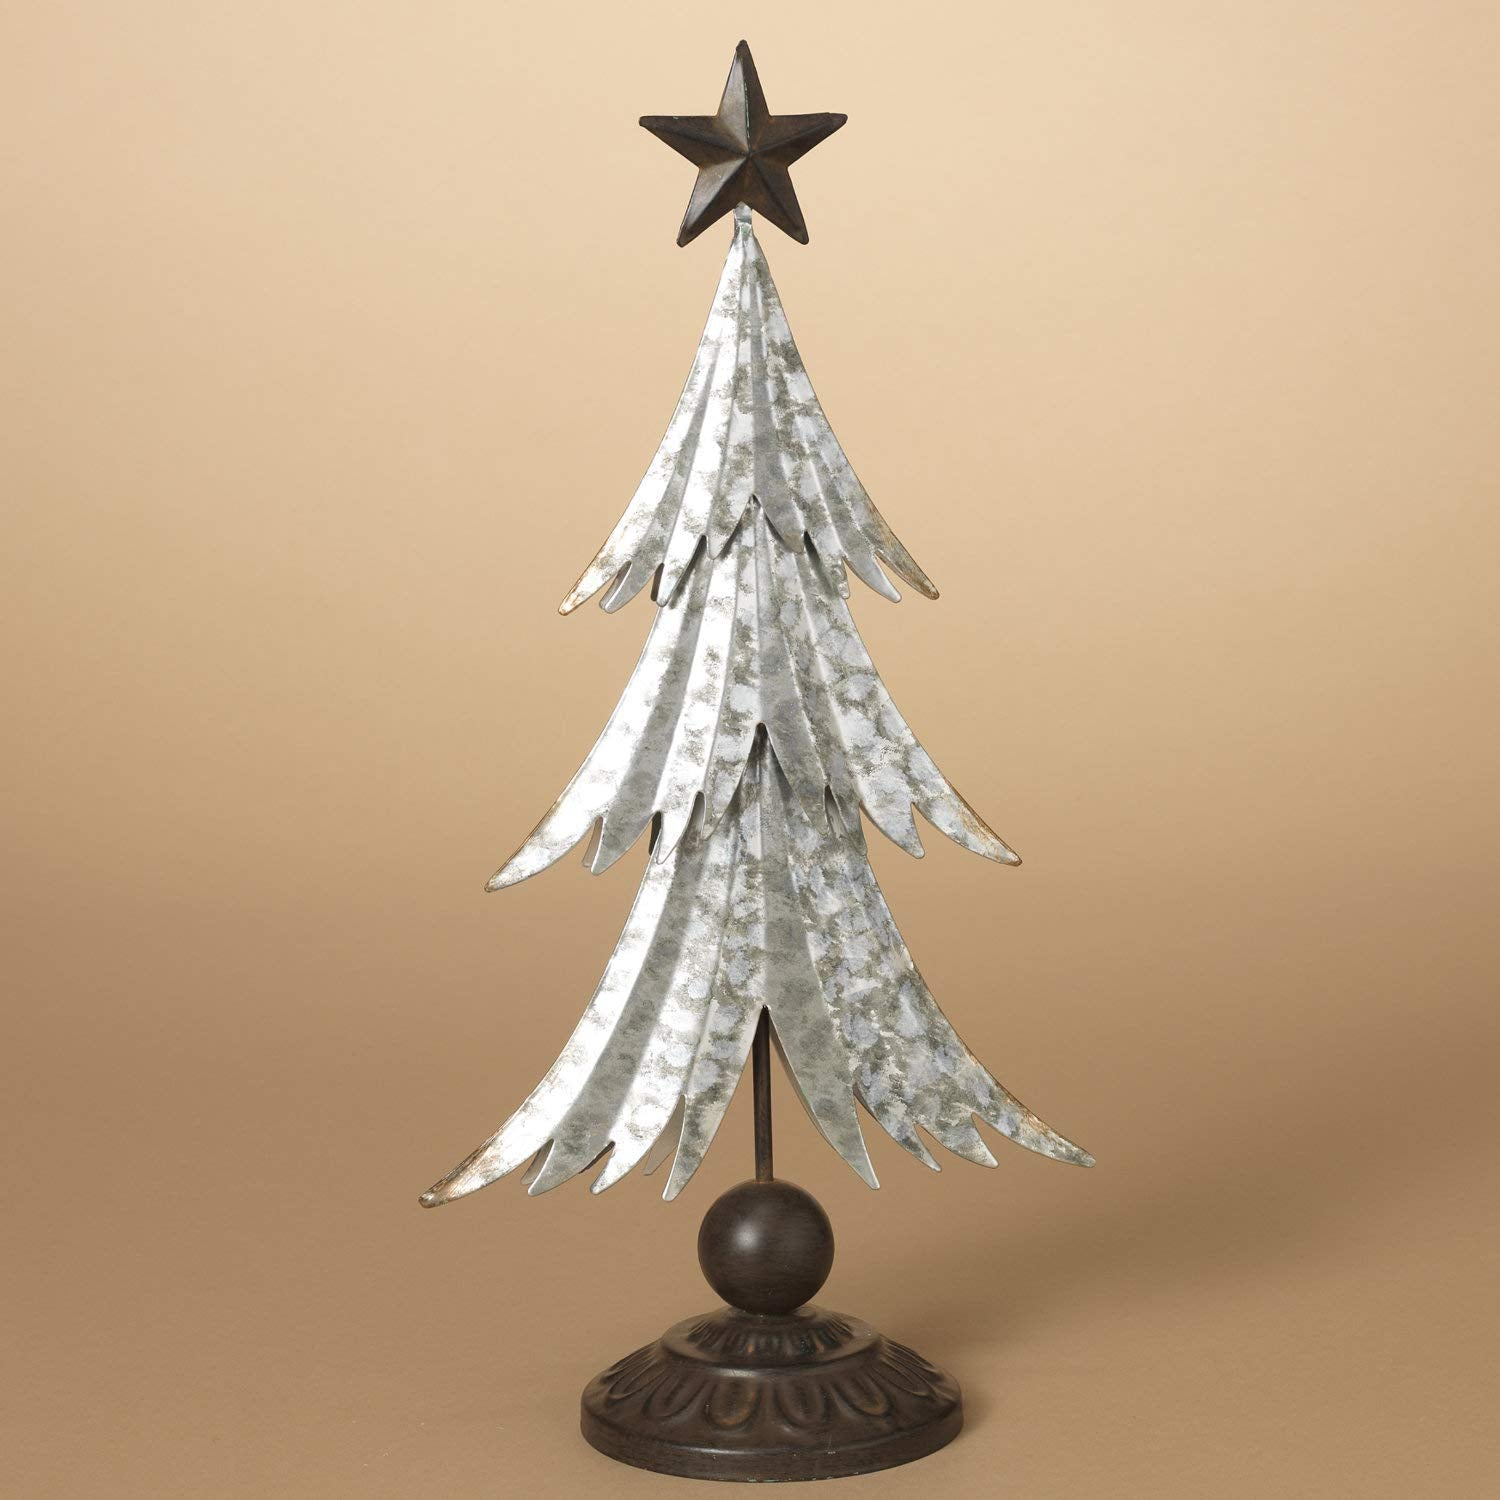 Metal Tabletop Christmas Tree: 70 Inch Galvanized Metal Snowflake Garland Holiday